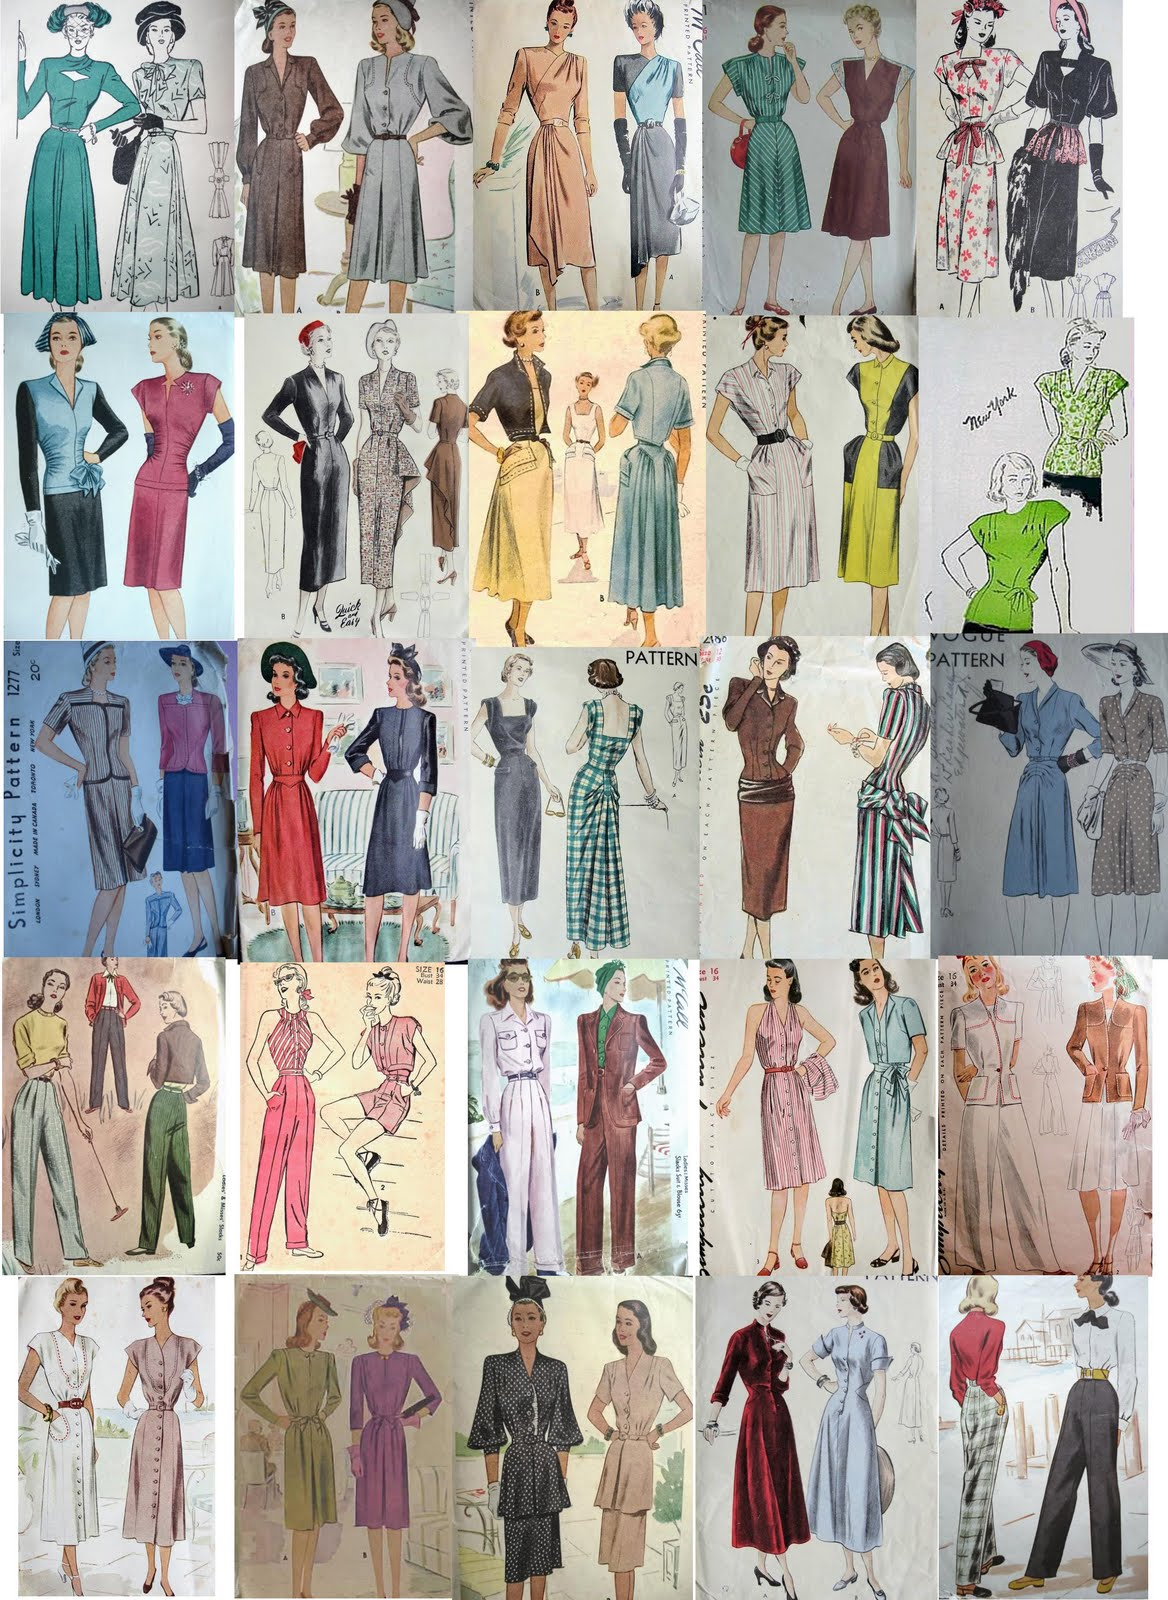 Forties Fashions: 1940's Fashion Designs for Sewing Patterns